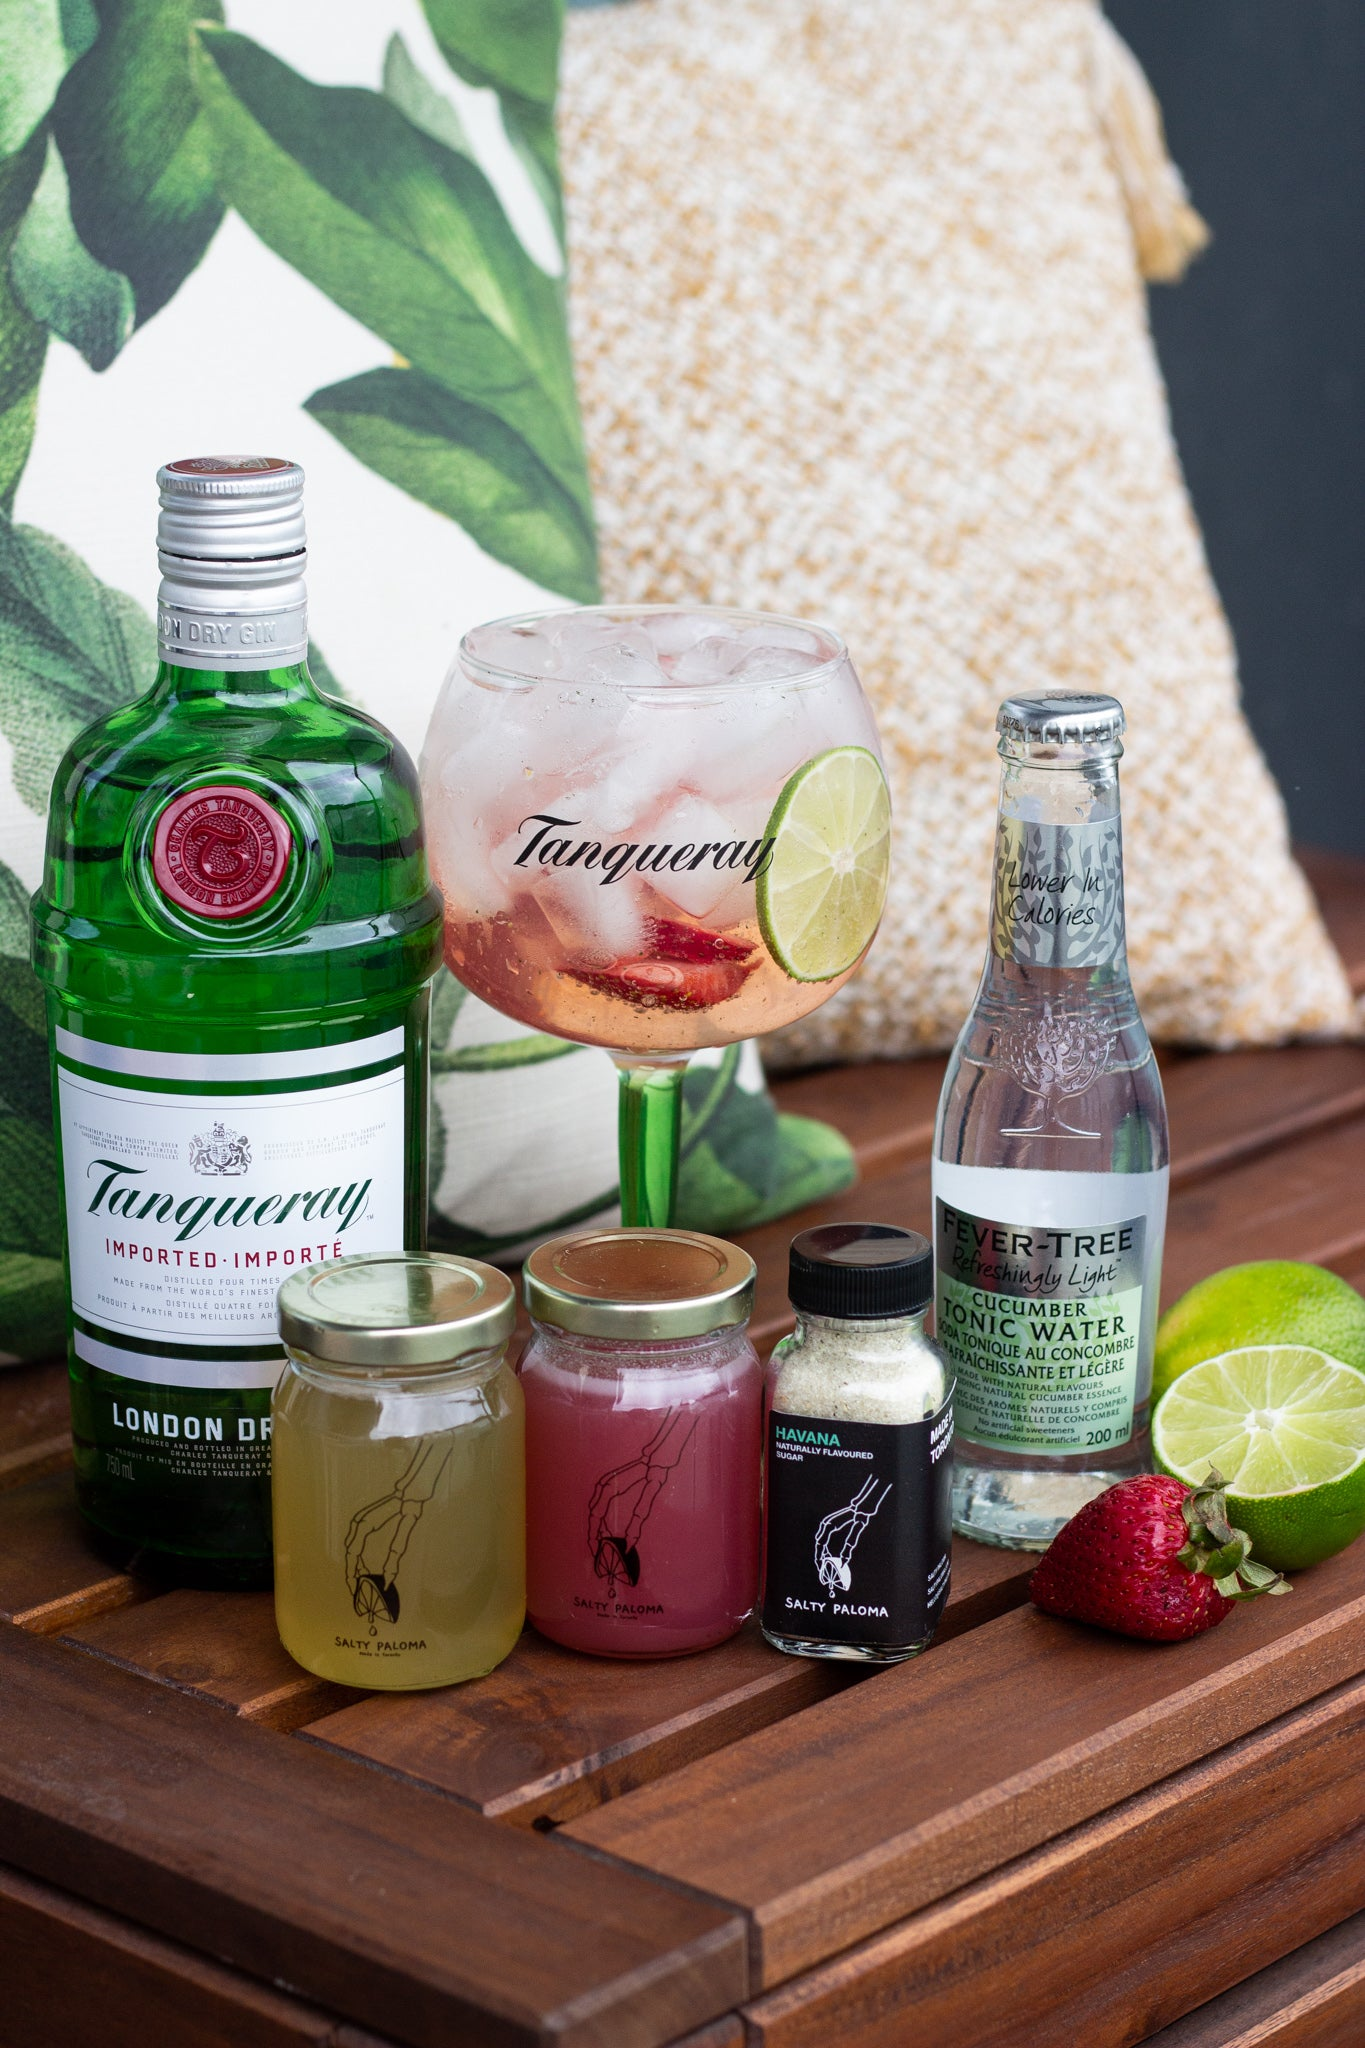 salty paloma tanqueray gin cocktail kit